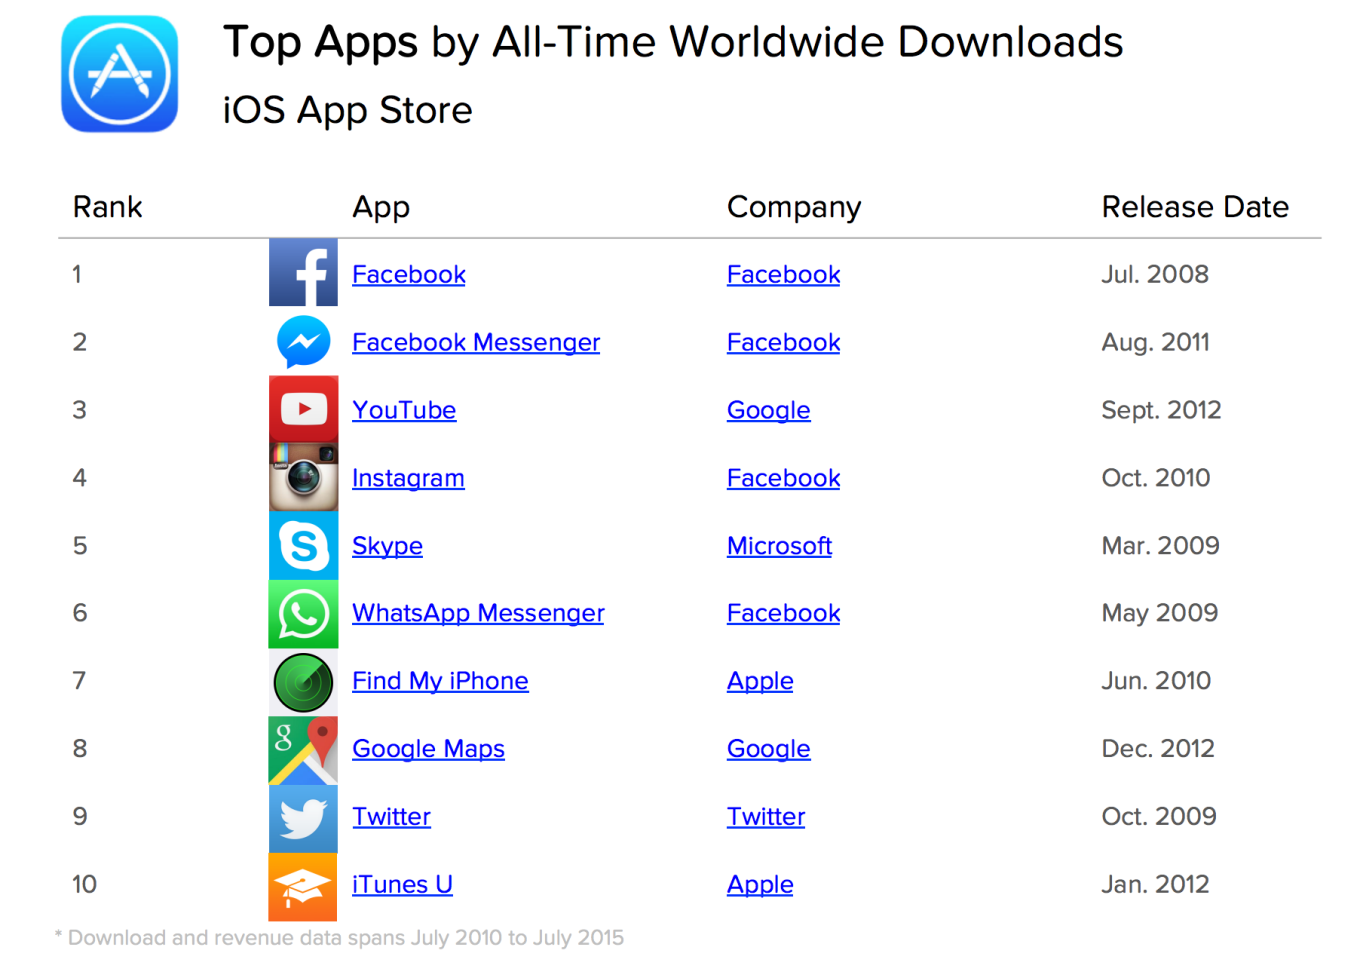 Top All-Time Worldwide Downloads